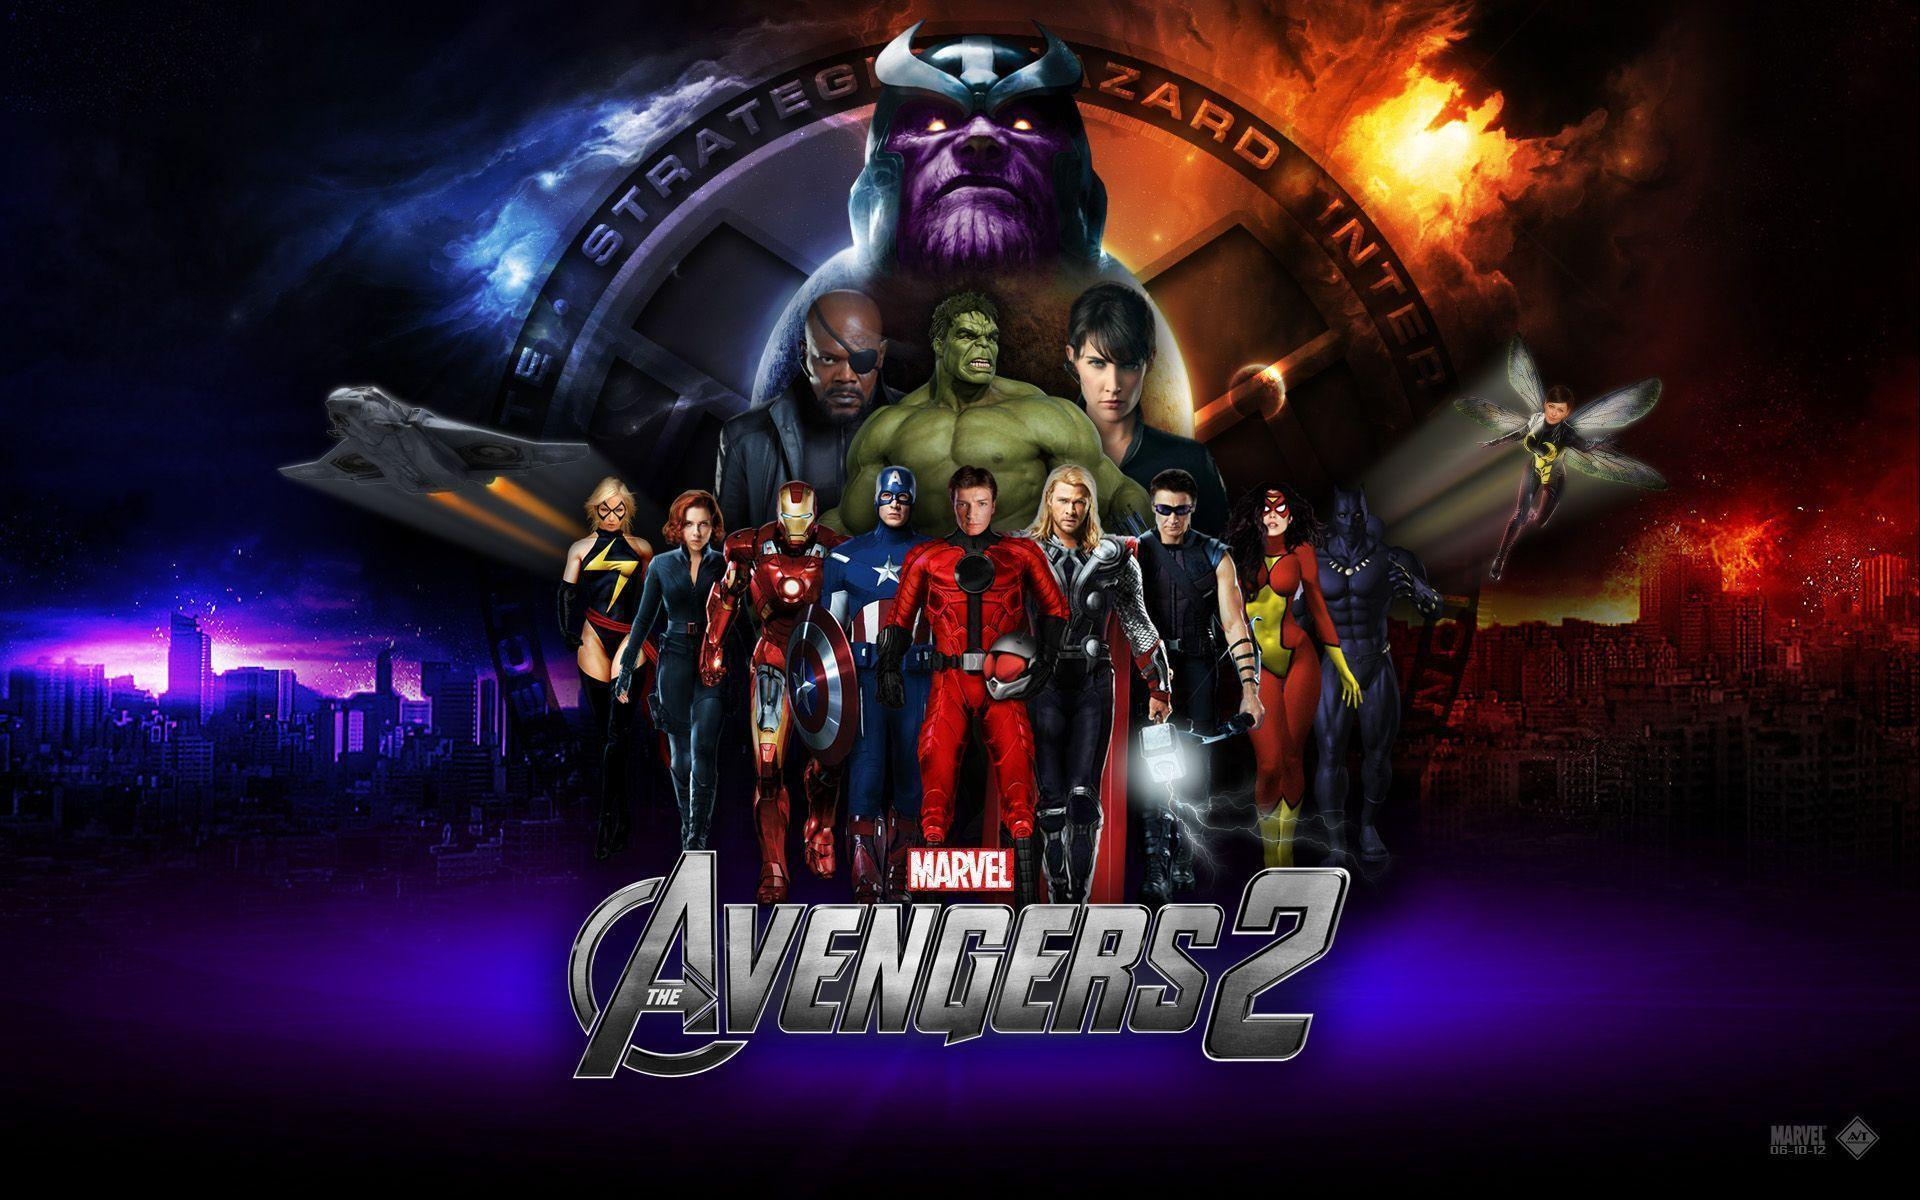 Wallpapers For > Avengers Wallpaper Hd Iphone